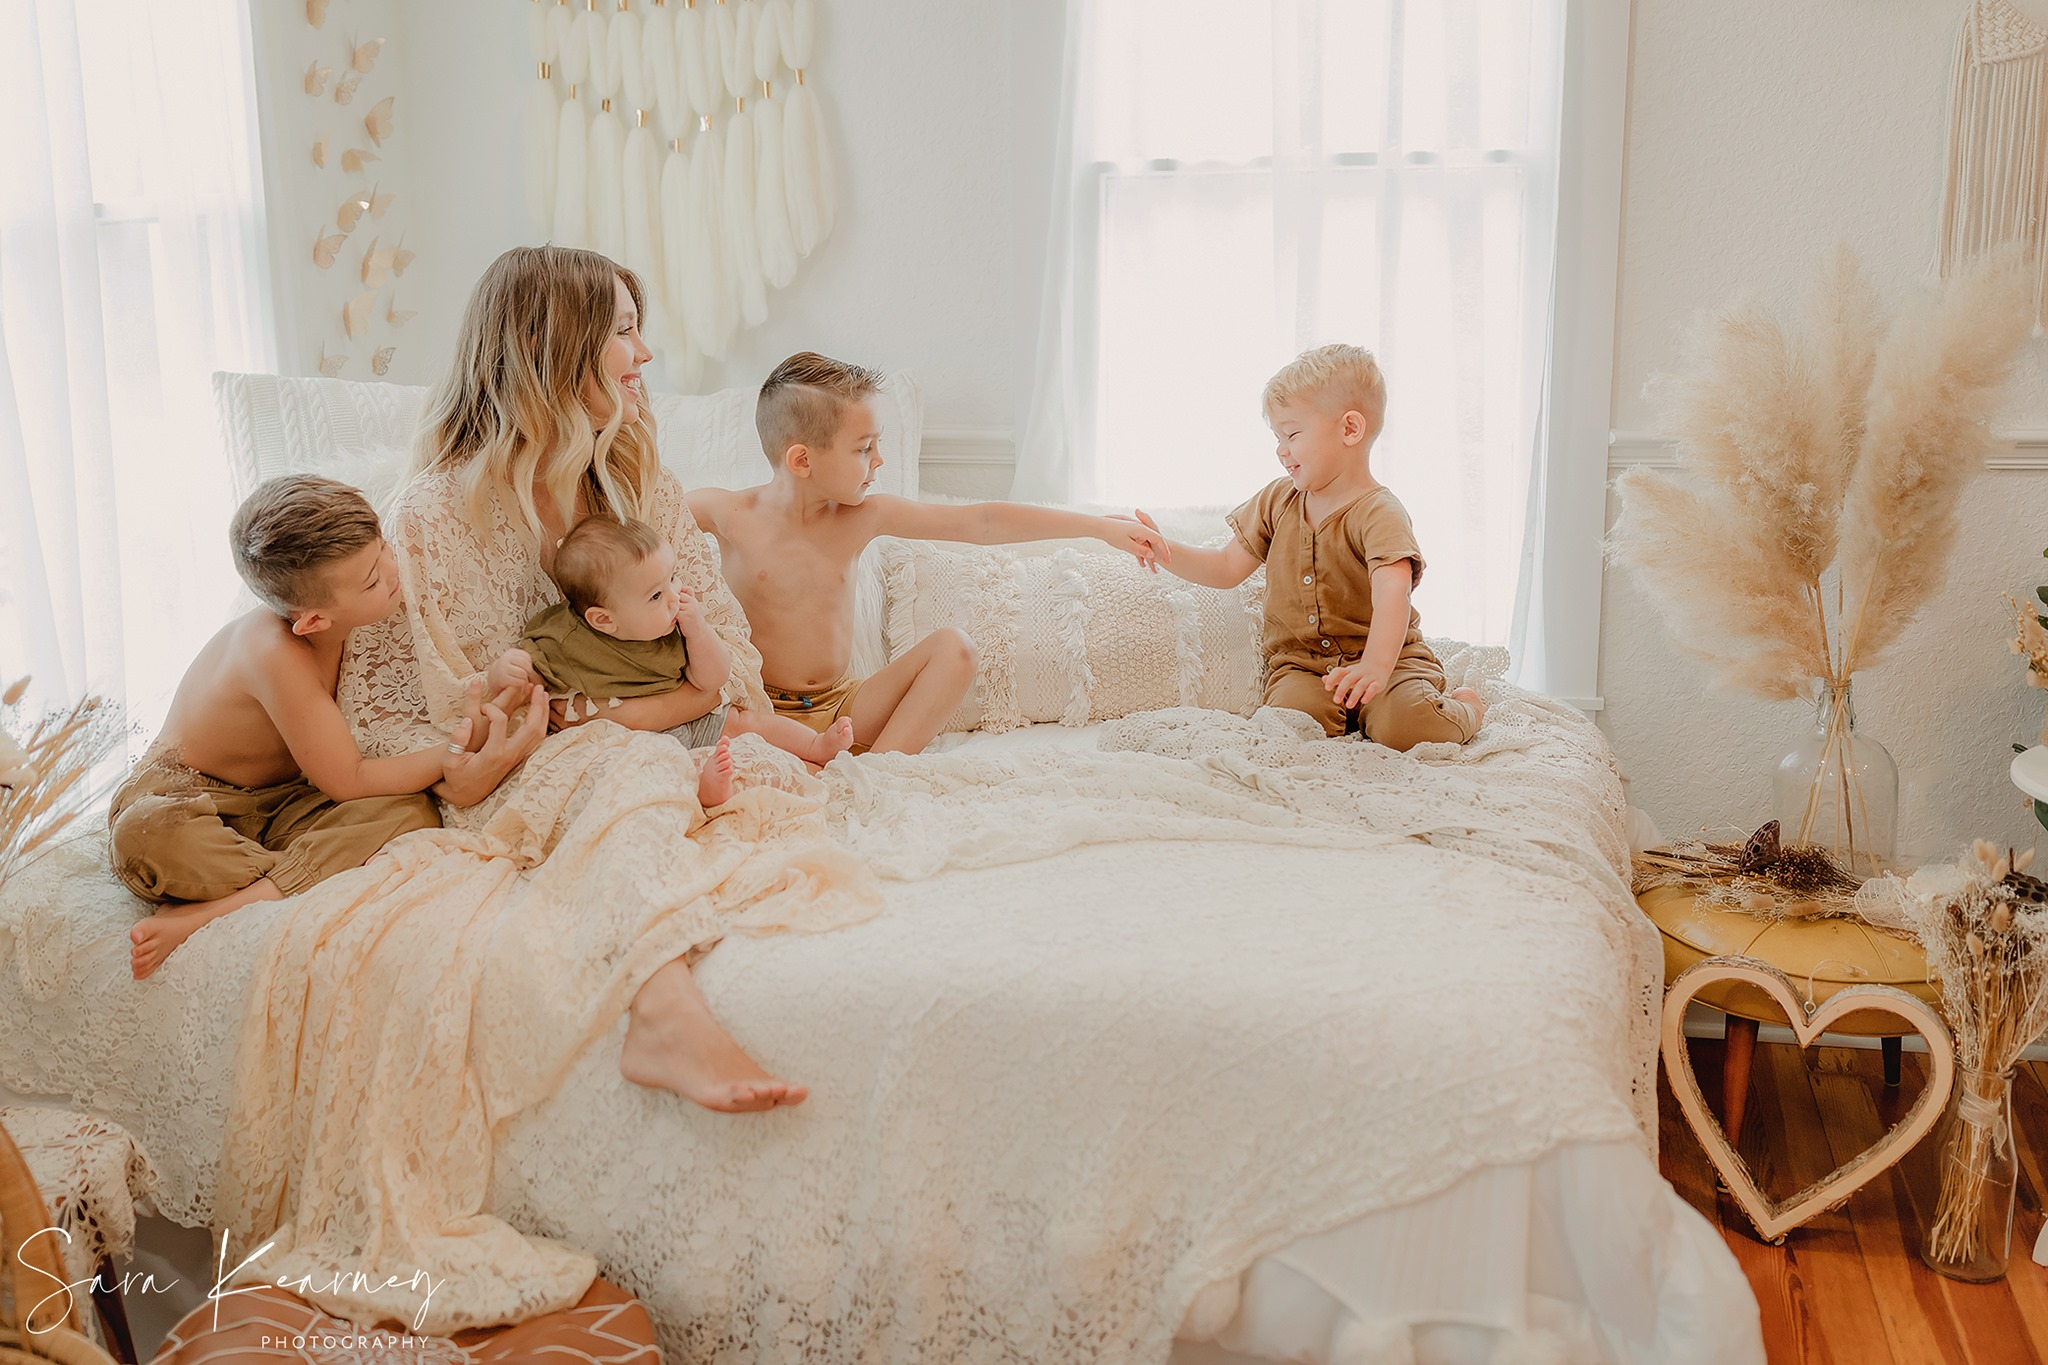 Boho Photo Shoot!! Mommy photoshoot | Sara Kearney Orlando Photographer 8